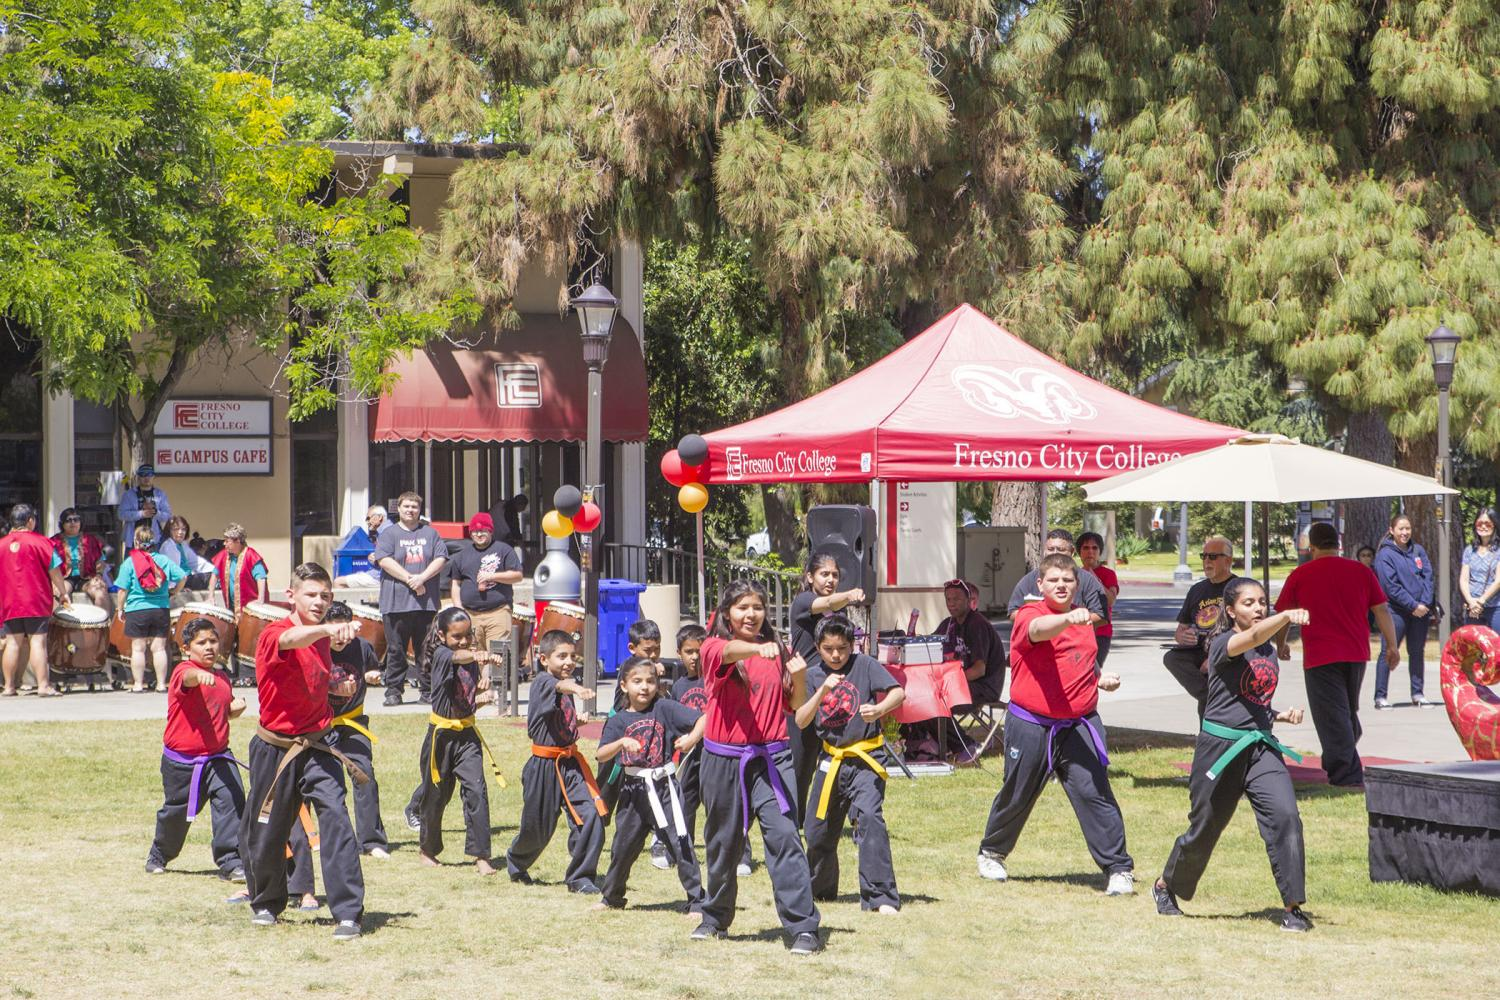 Students+from+the+Red+Dragon+Dojo+demonstrate+their+moves+at+Asian+Fest+on+April+20%2C+2017.